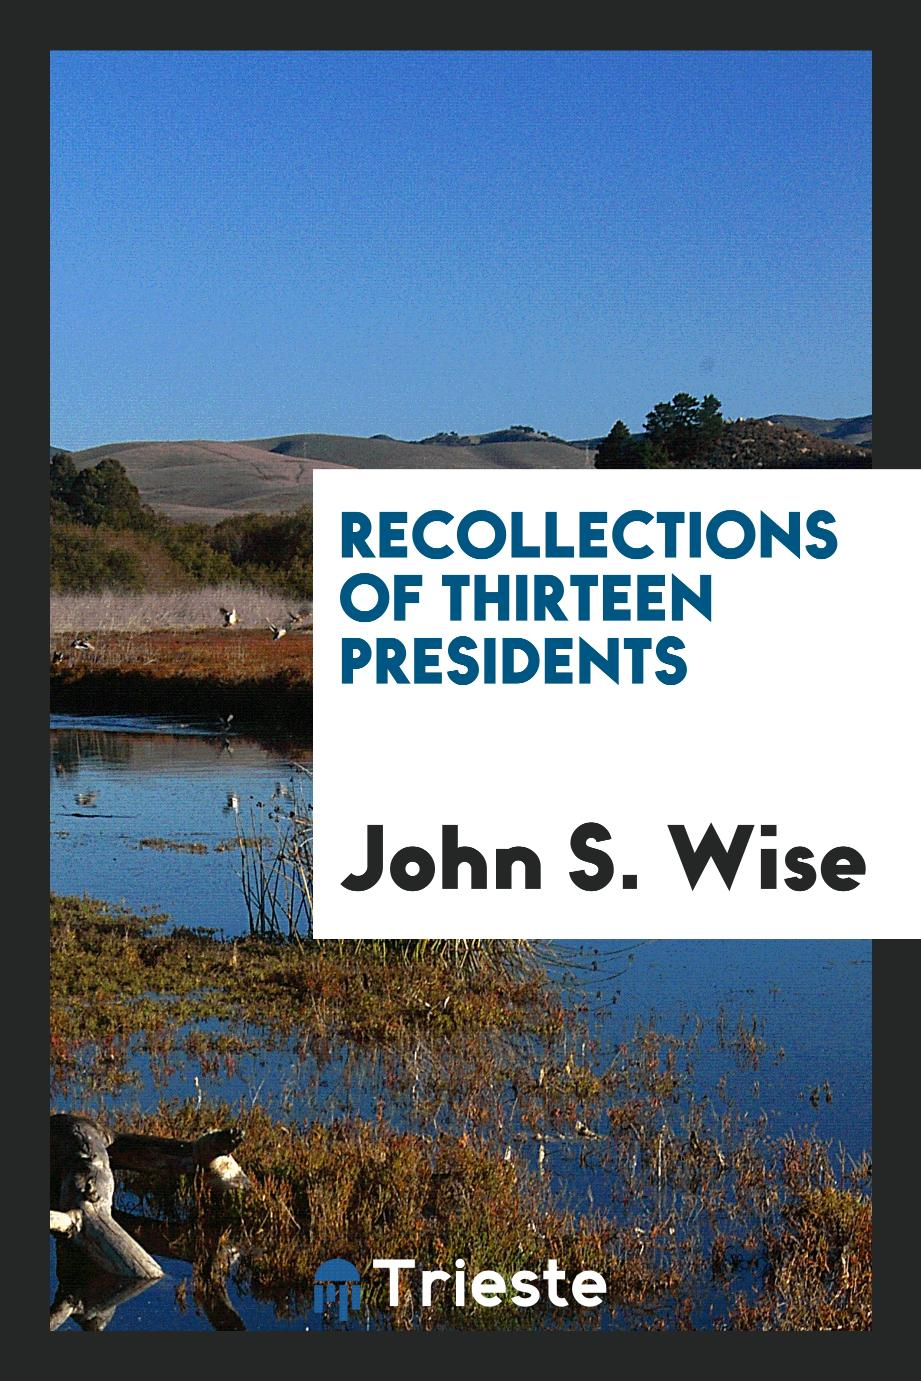 Recollections of Thirteen Presidents